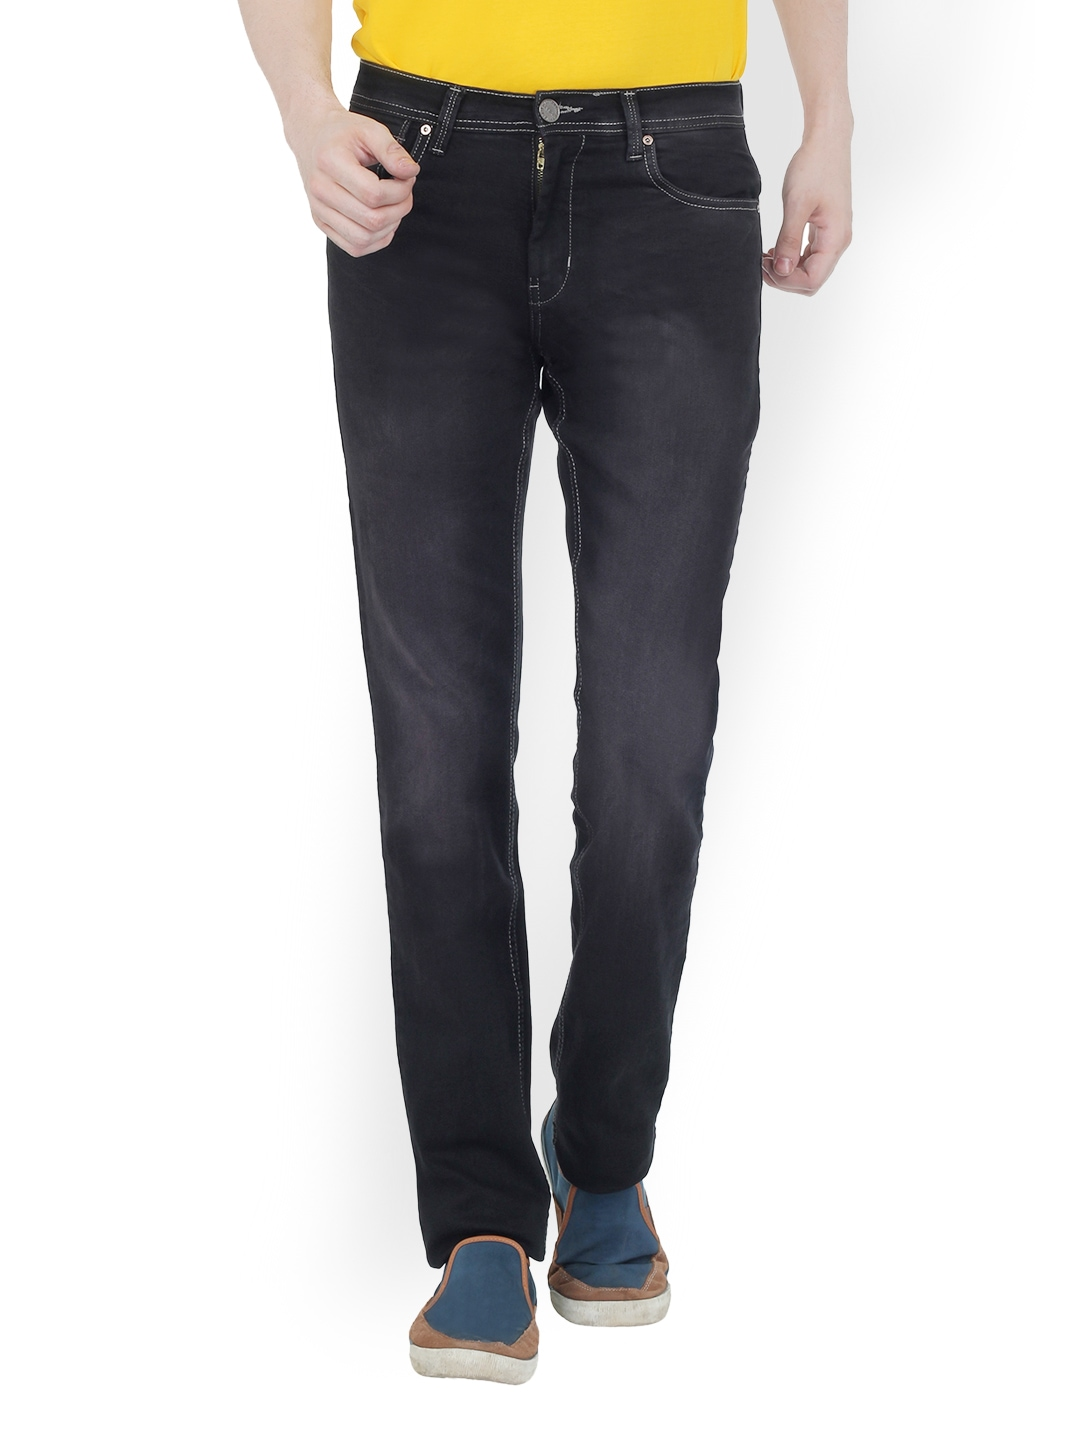 Live-in Jeans. 20, likes · 48 talking about this. Jeans so stylish and comfortable, you'd never want to get out of them!